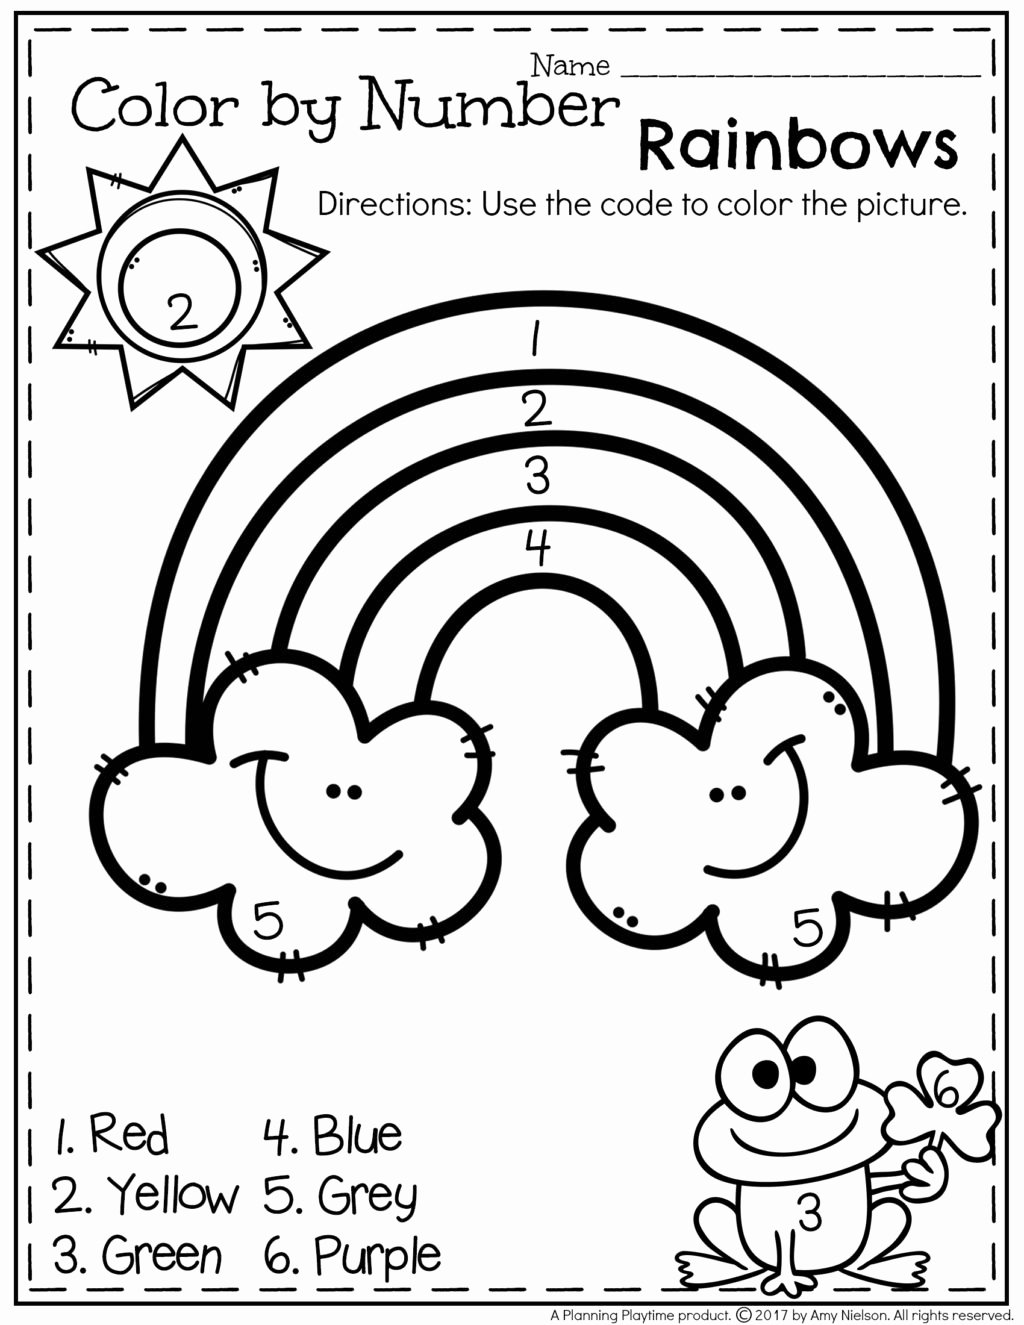 Square Worksheets for Preschoolers Inspirational Worksheet Worksheet Tremendous Number Worksheets for